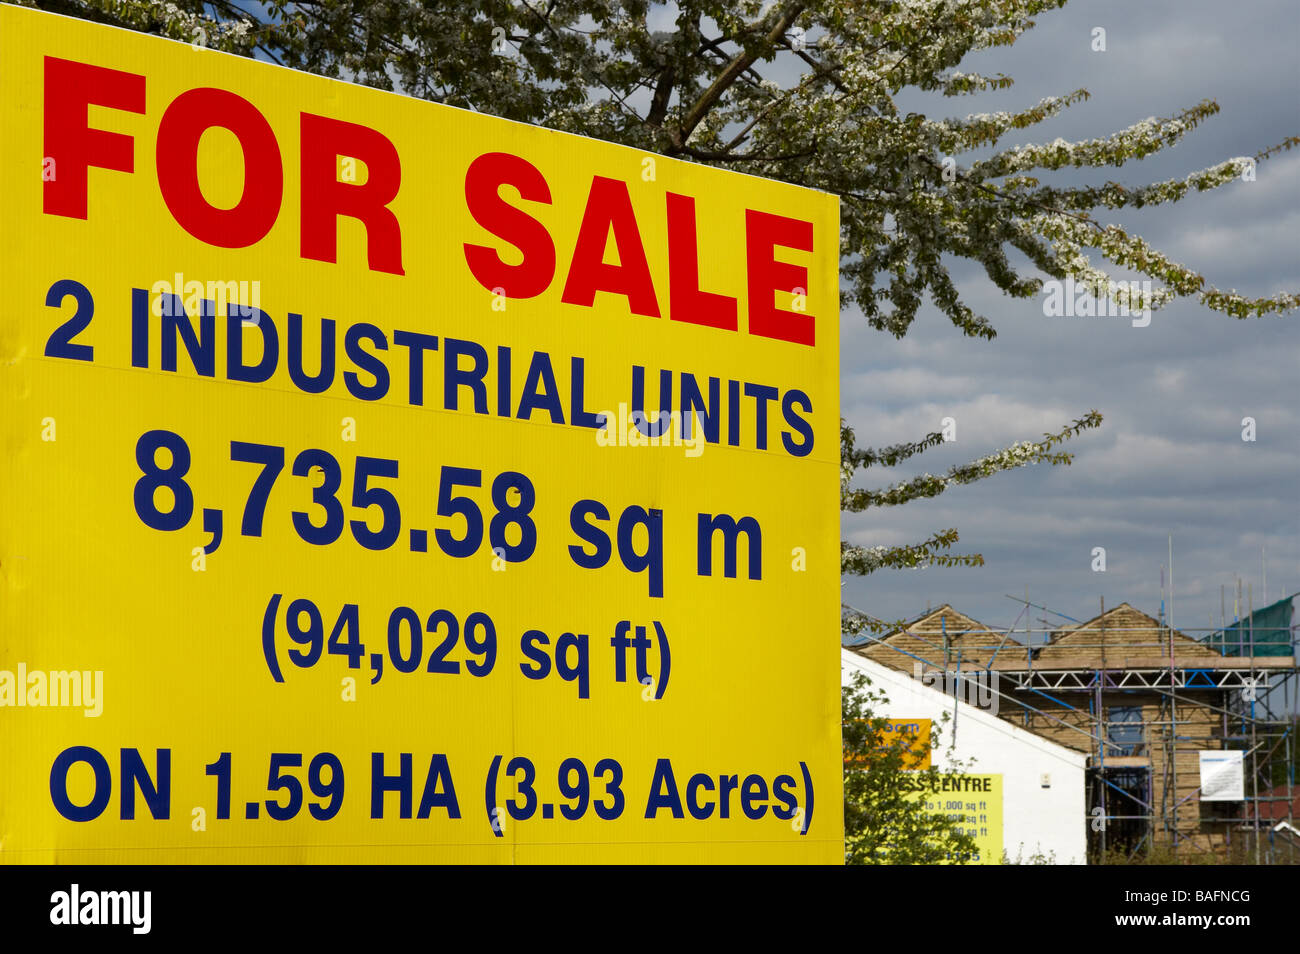 INDUSTRIAL COMMERCIAL PROPERTY UNIT FOR SALE SIGN - Stock Image